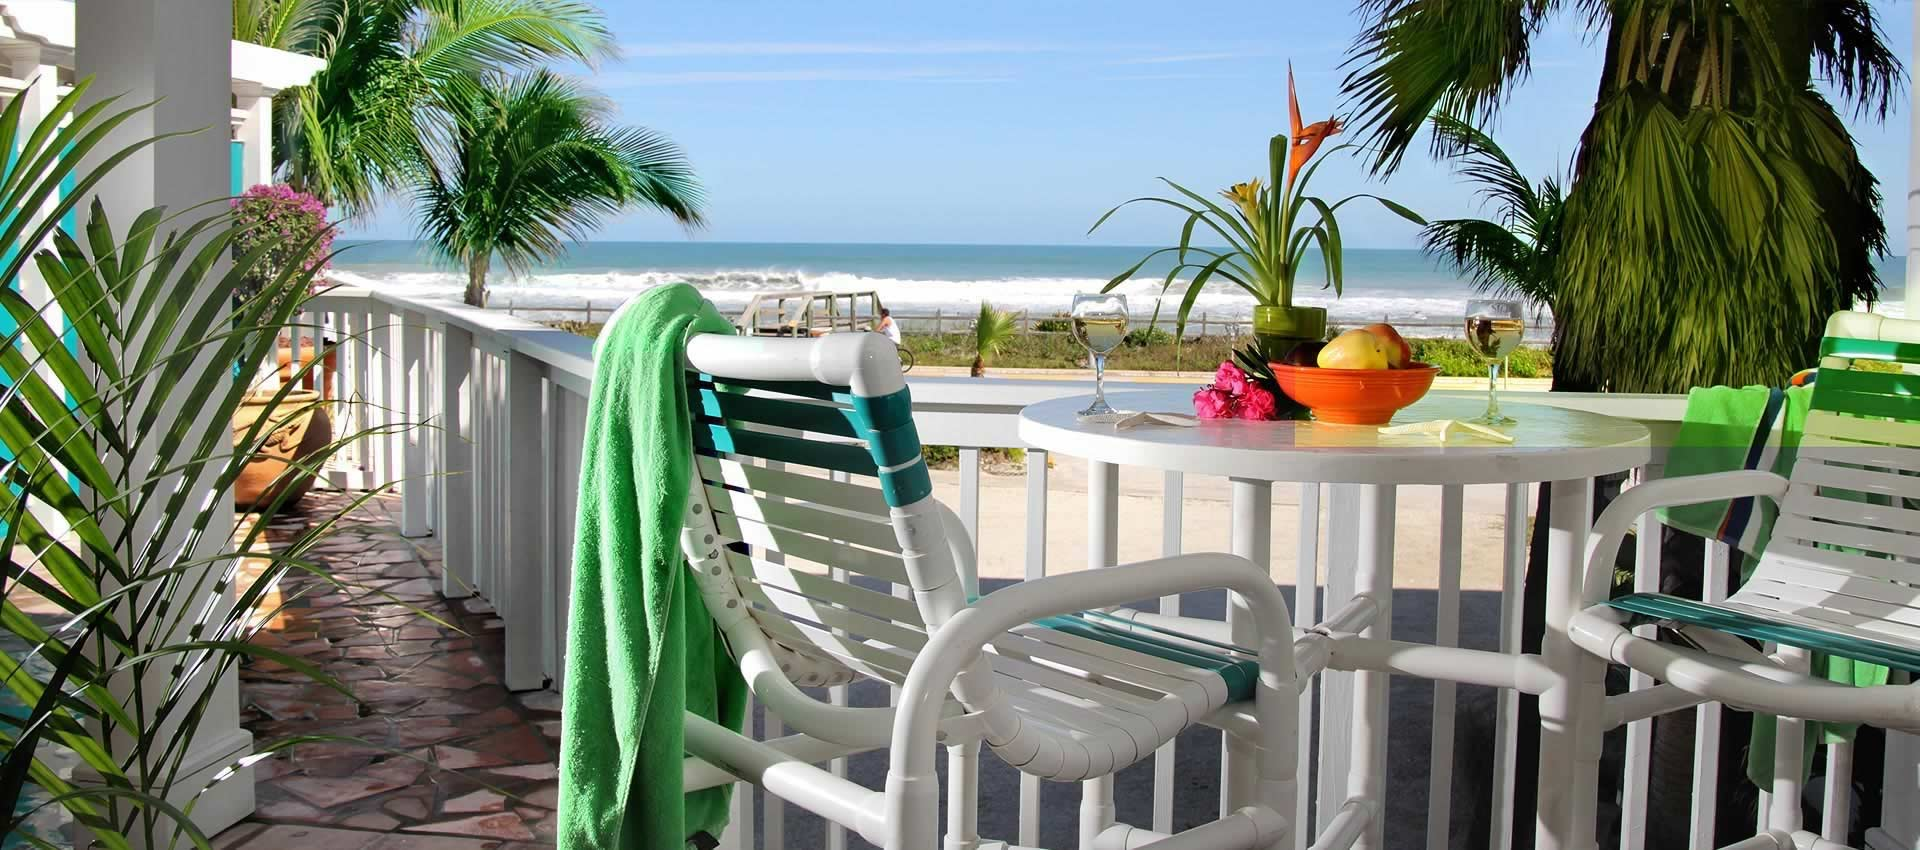 Oceanfront-cottages-view